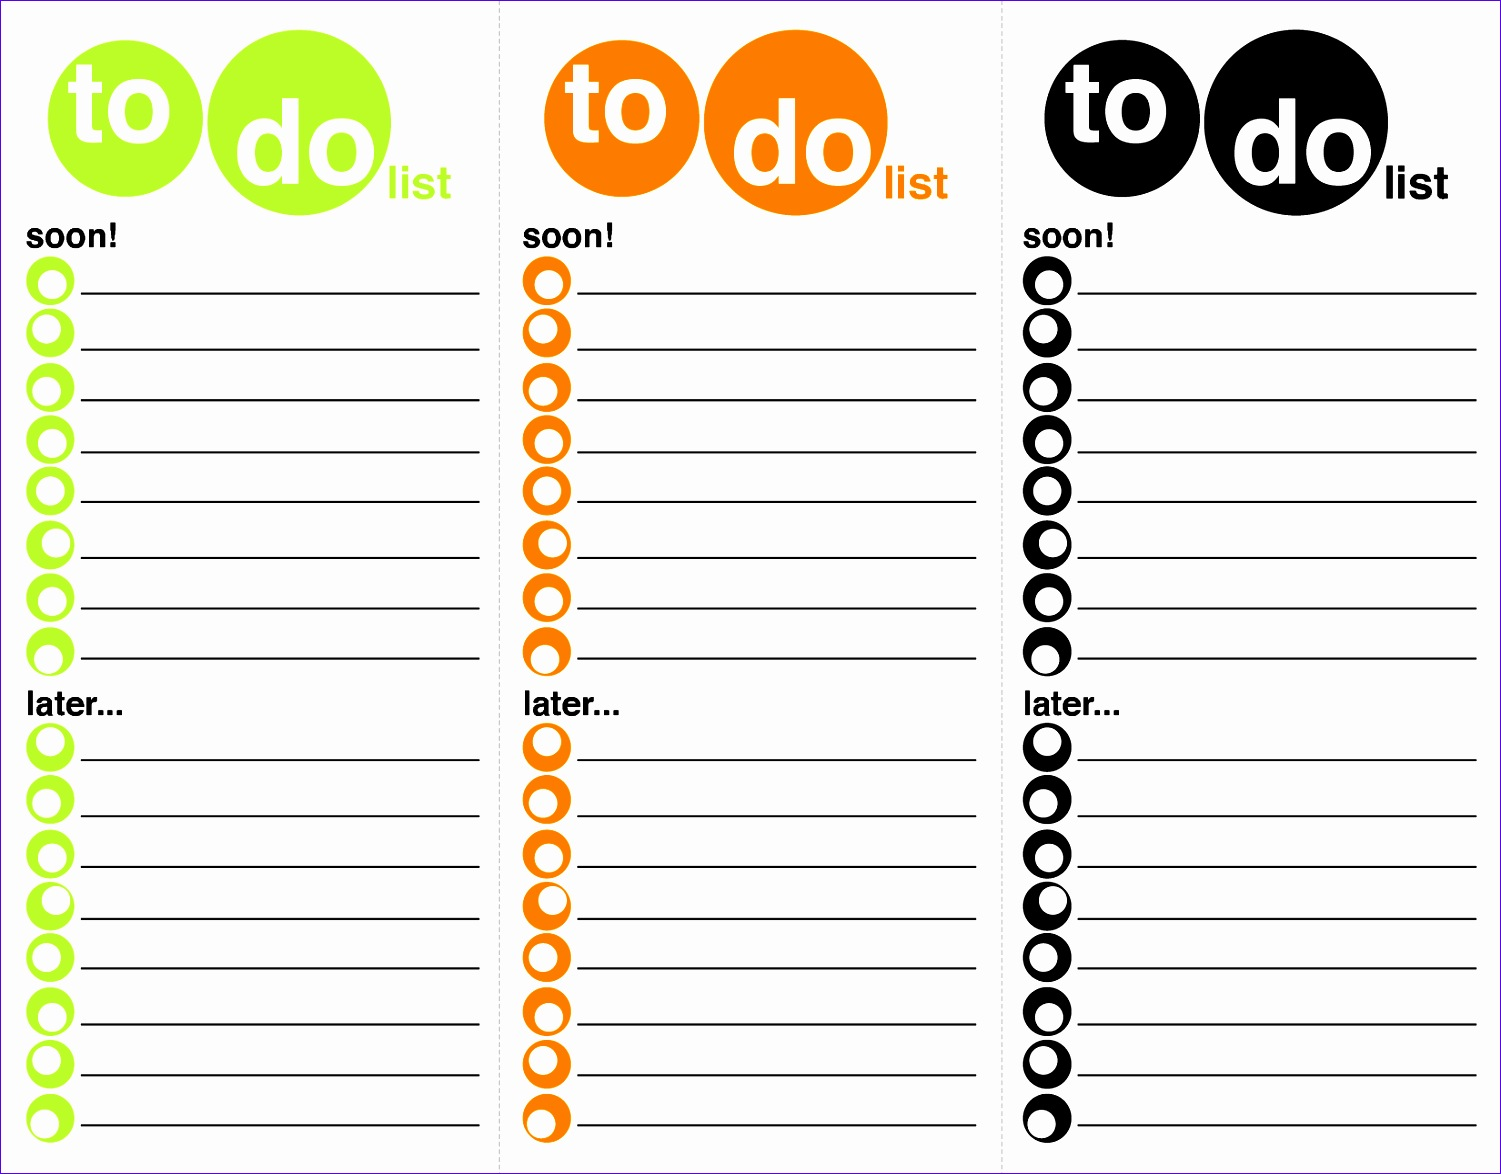 excel to do list template 15011174